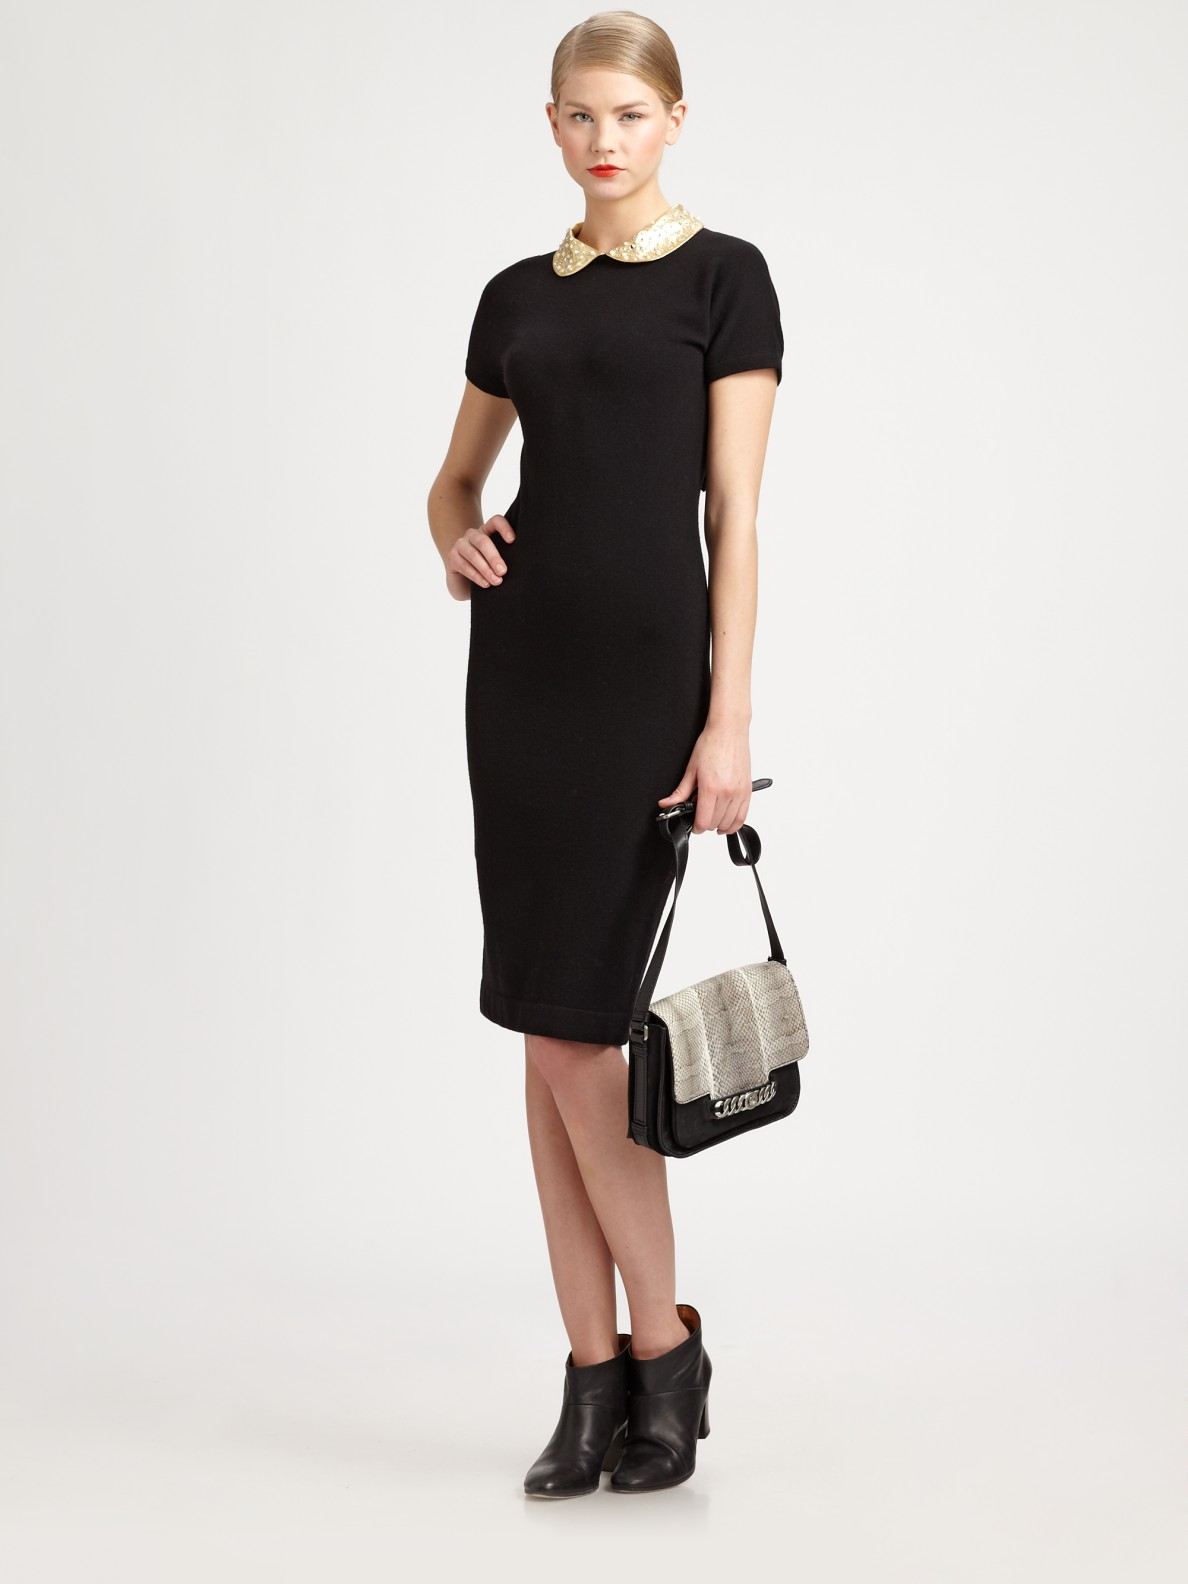 Lyst - Marc by marc jacobs Mika Dress with Embellished